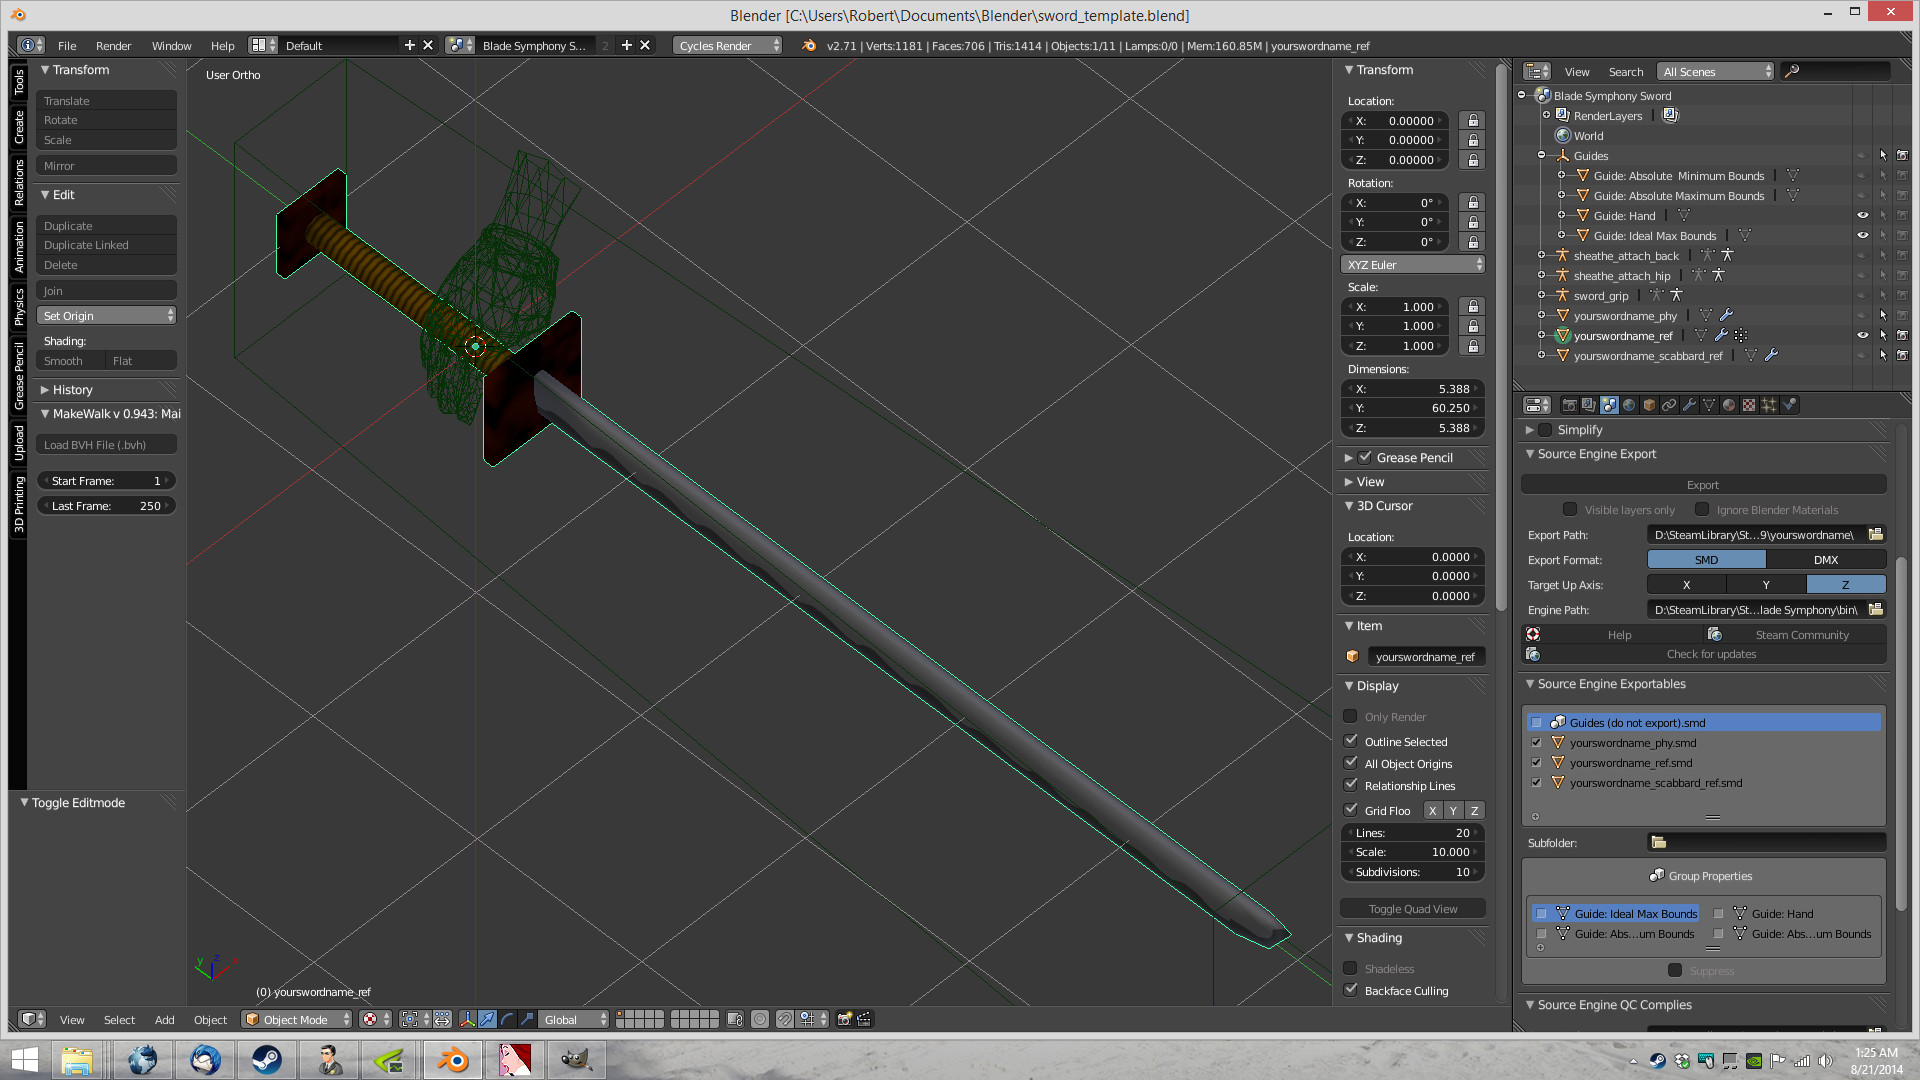 Steam Community Guide Using Blender To Create Blade Symphony